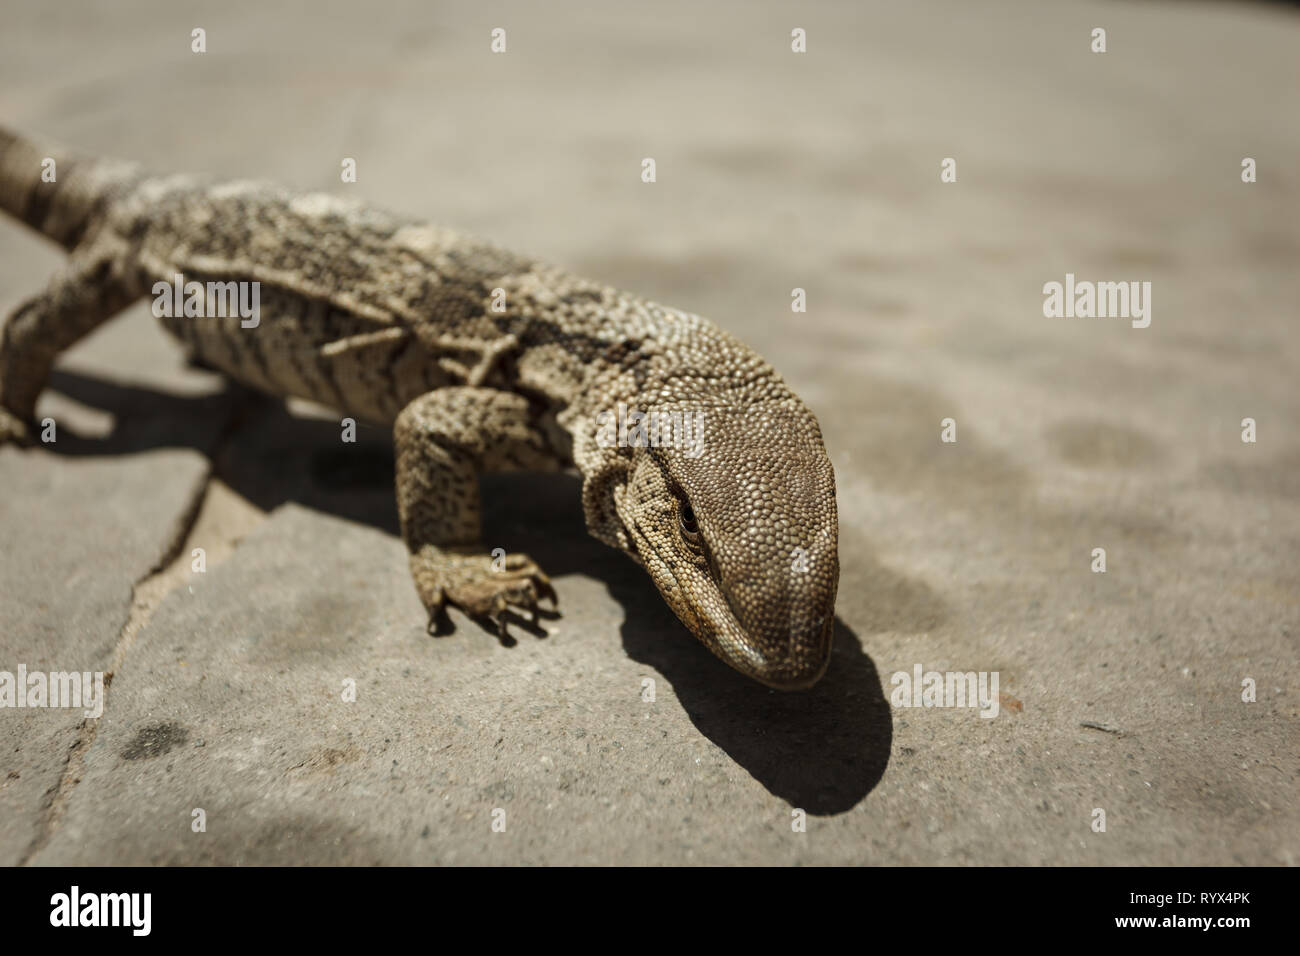 Closeup of head and body of river monitor lizard in desert in Africa Stock Photo